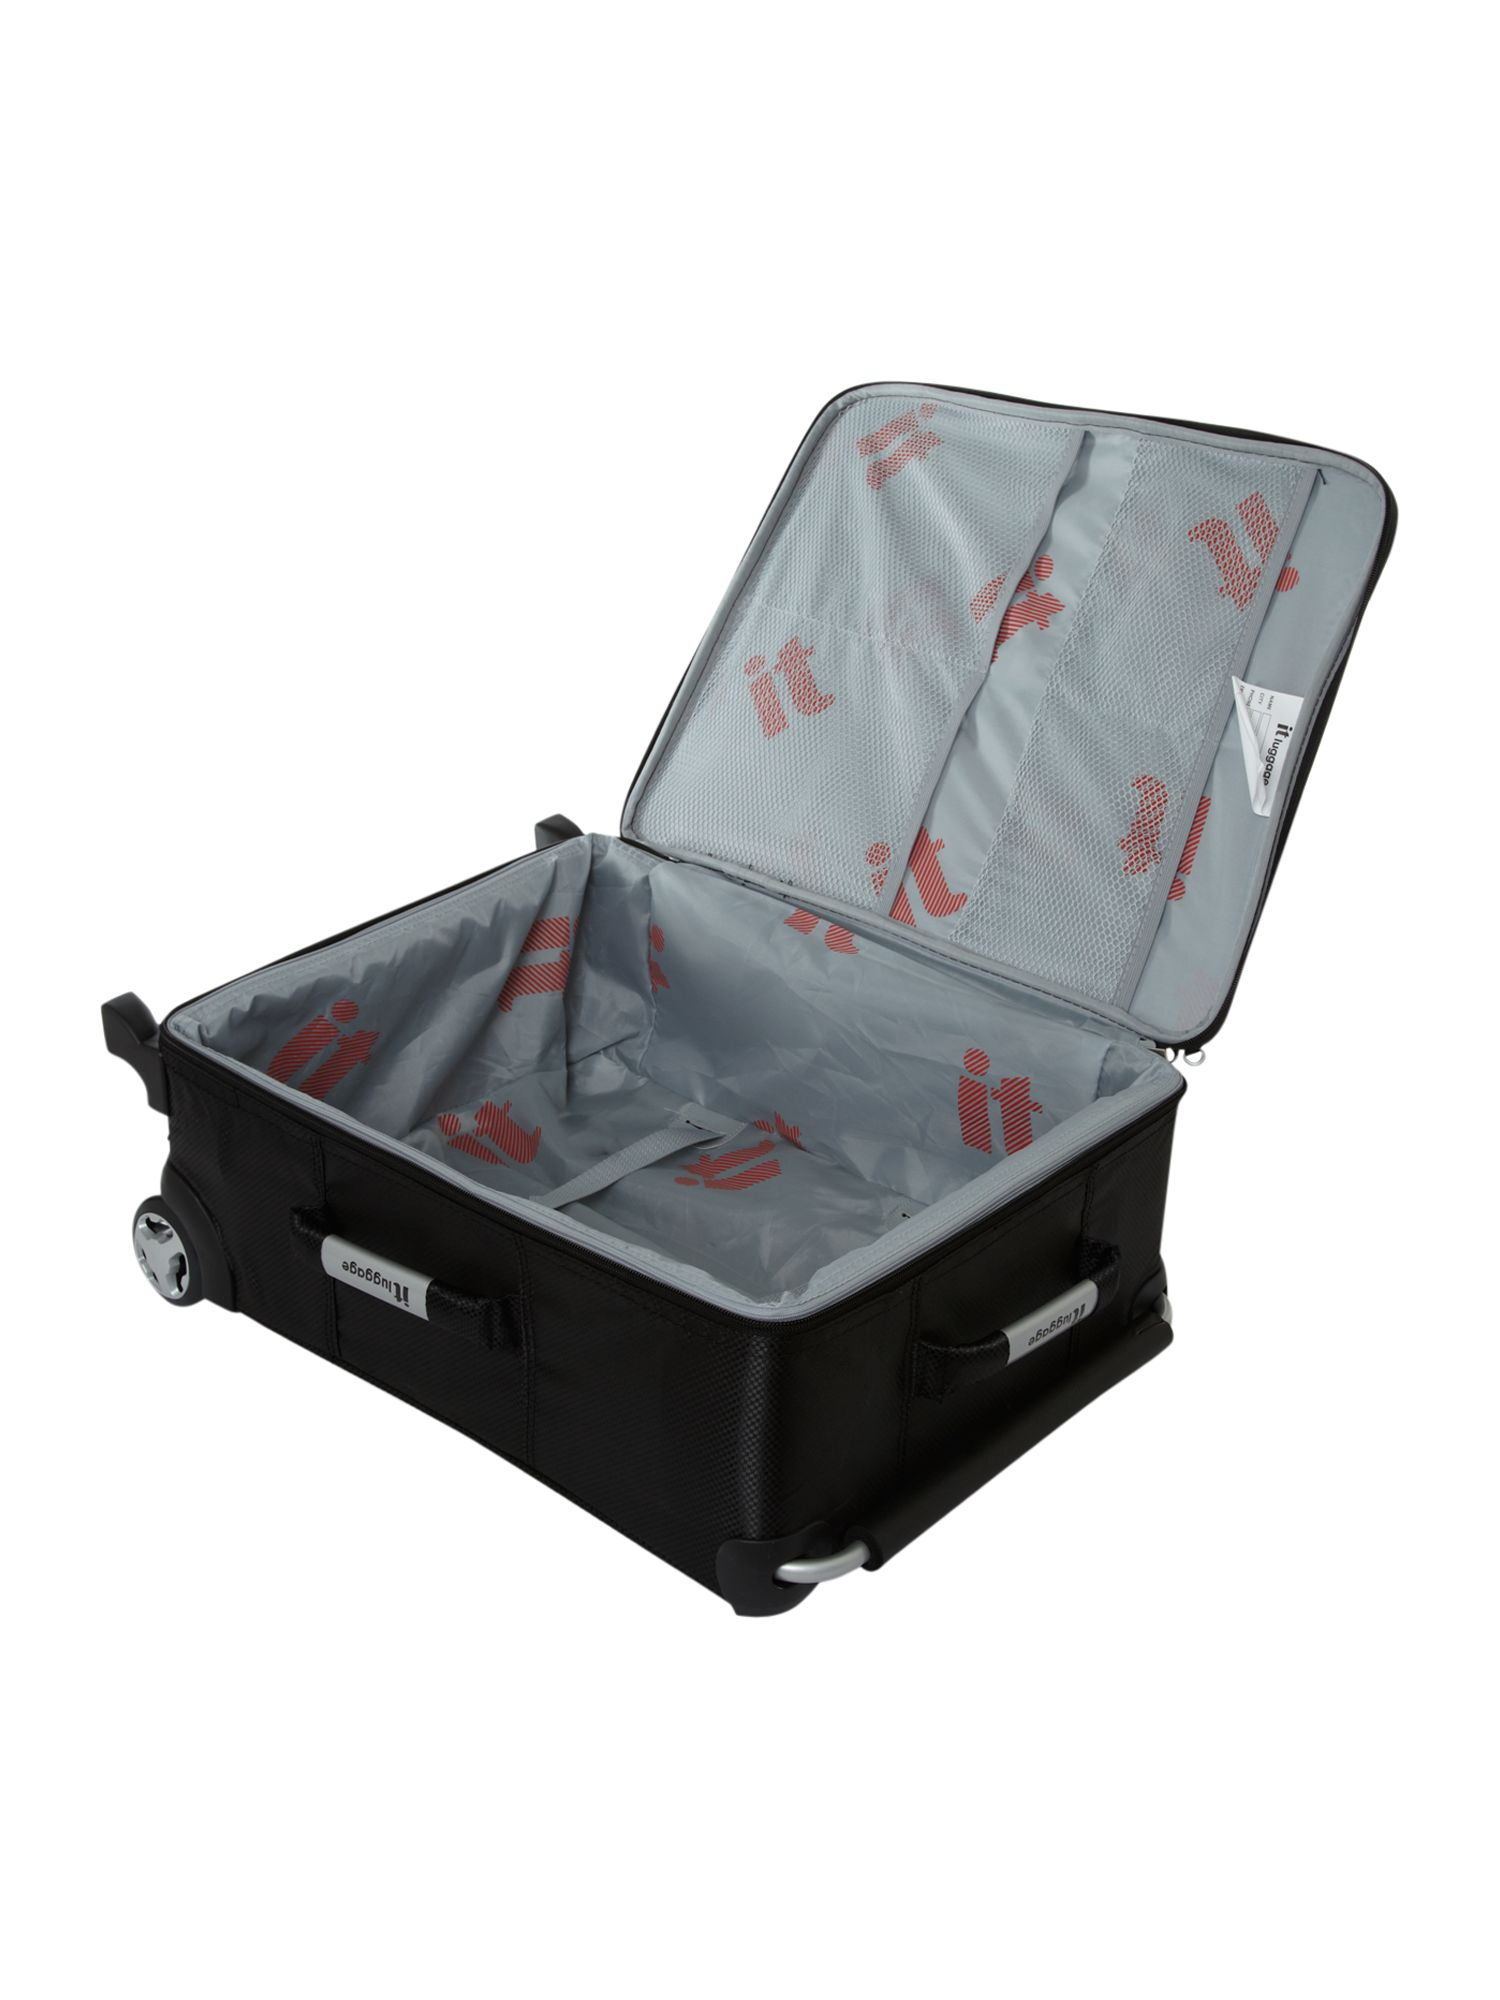 IT-02 Worlds Lightest All Airline Cabin Case